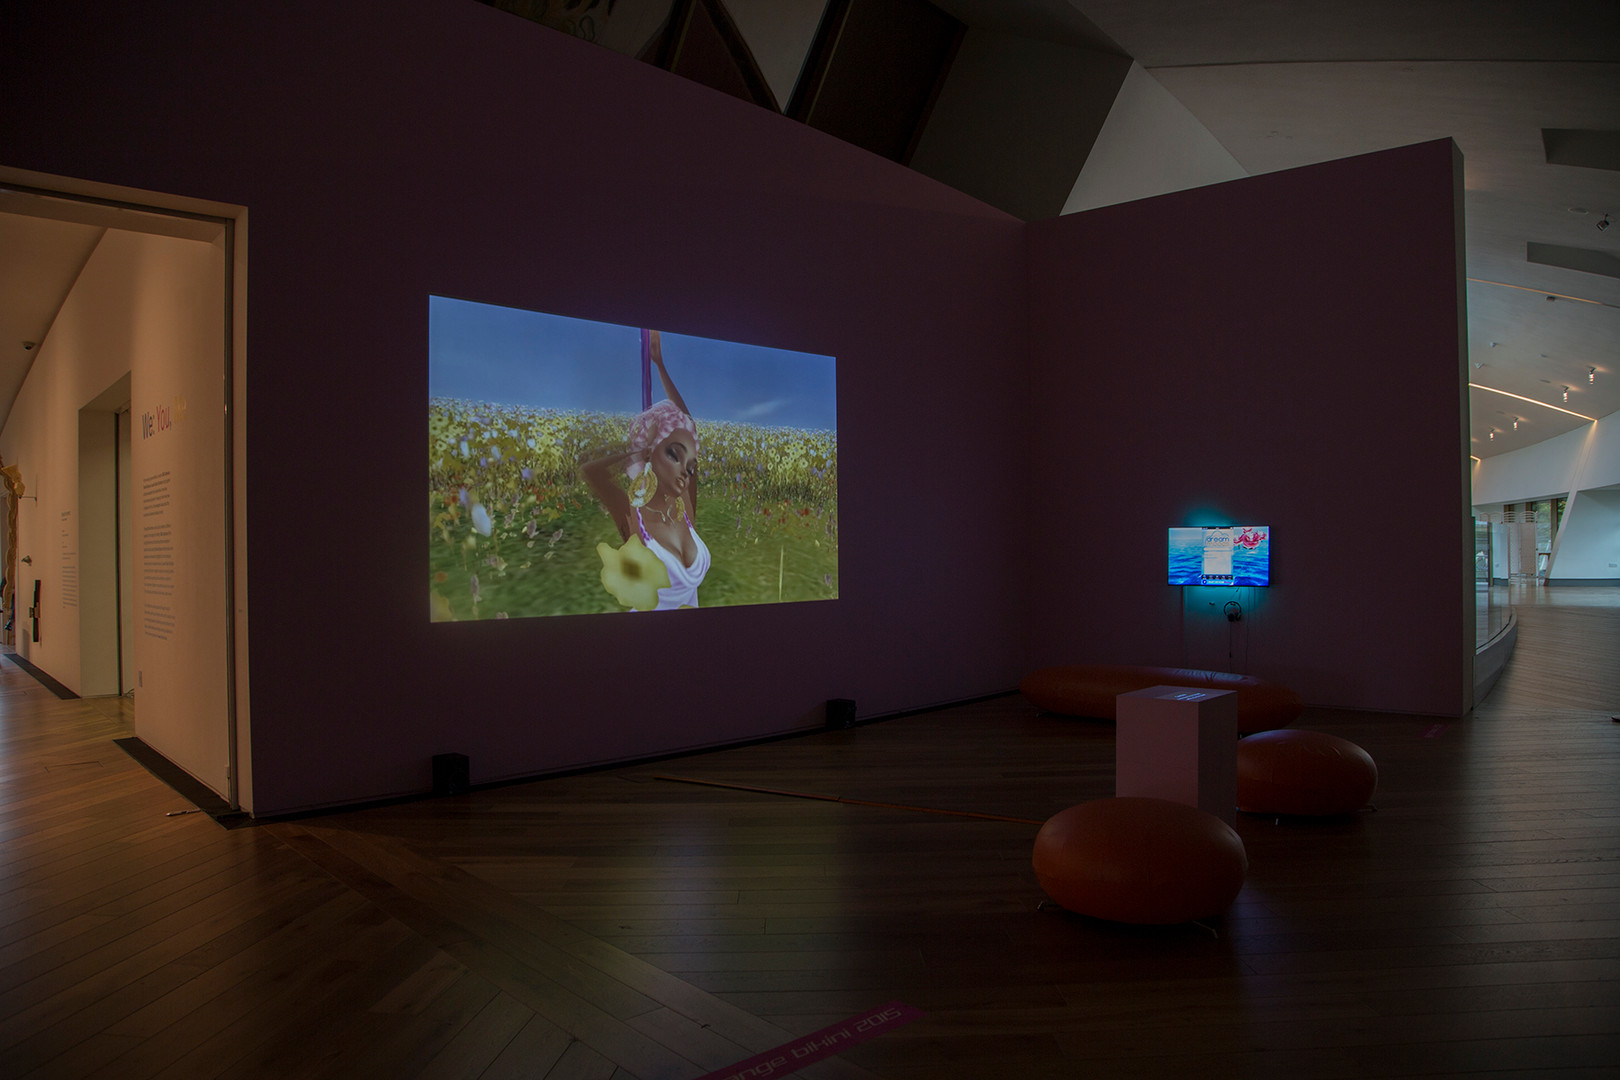 Orange Bikini and Gym Class, installation view